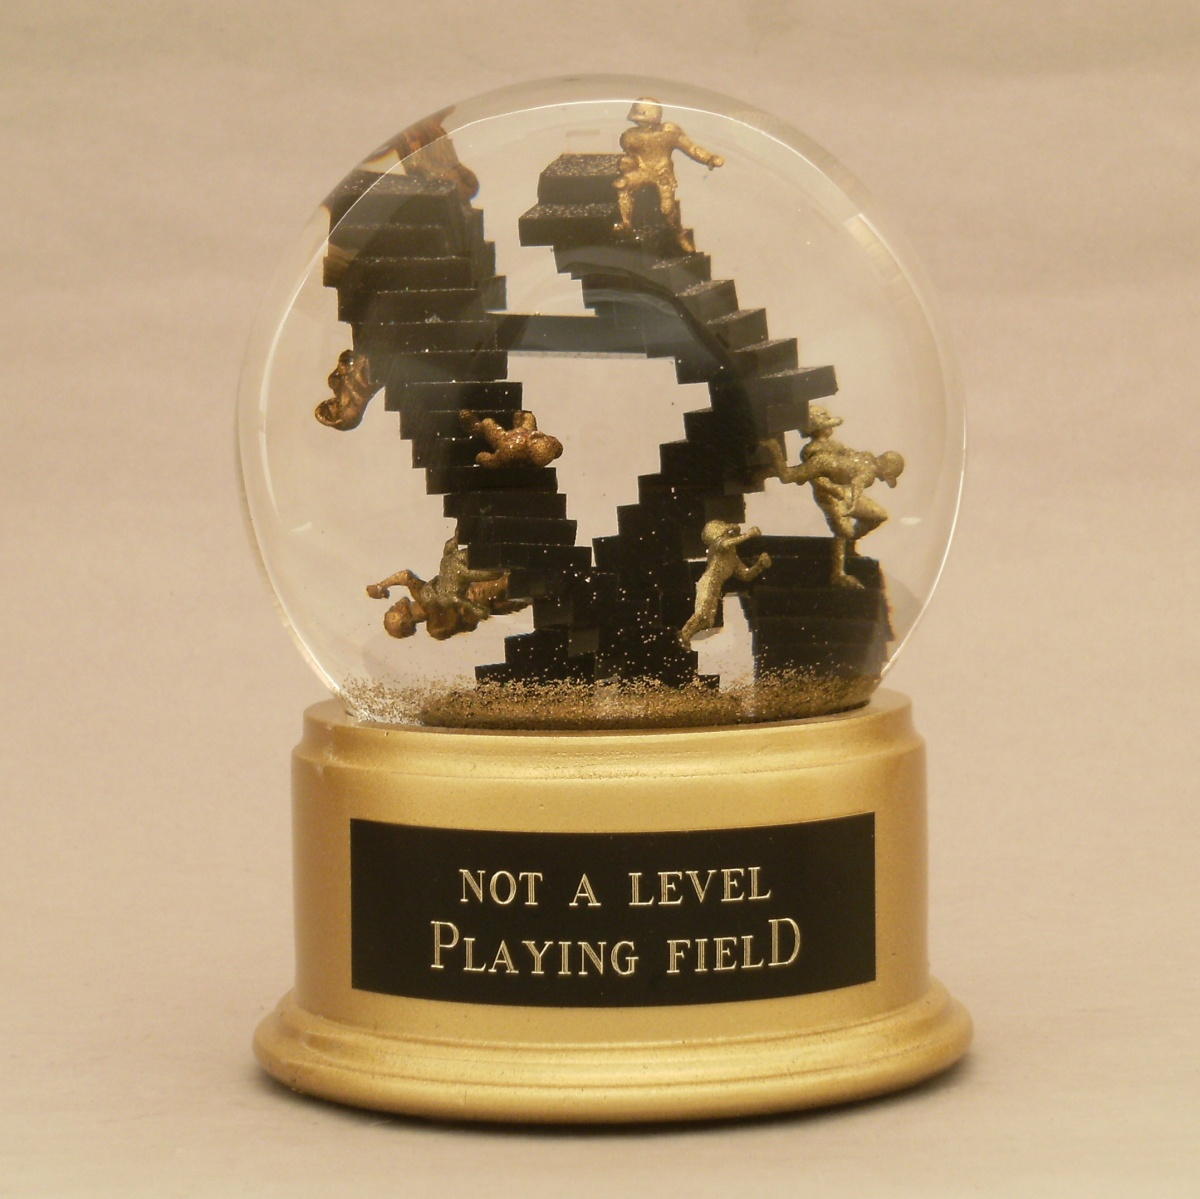 Not a Level Playing Field snow globe